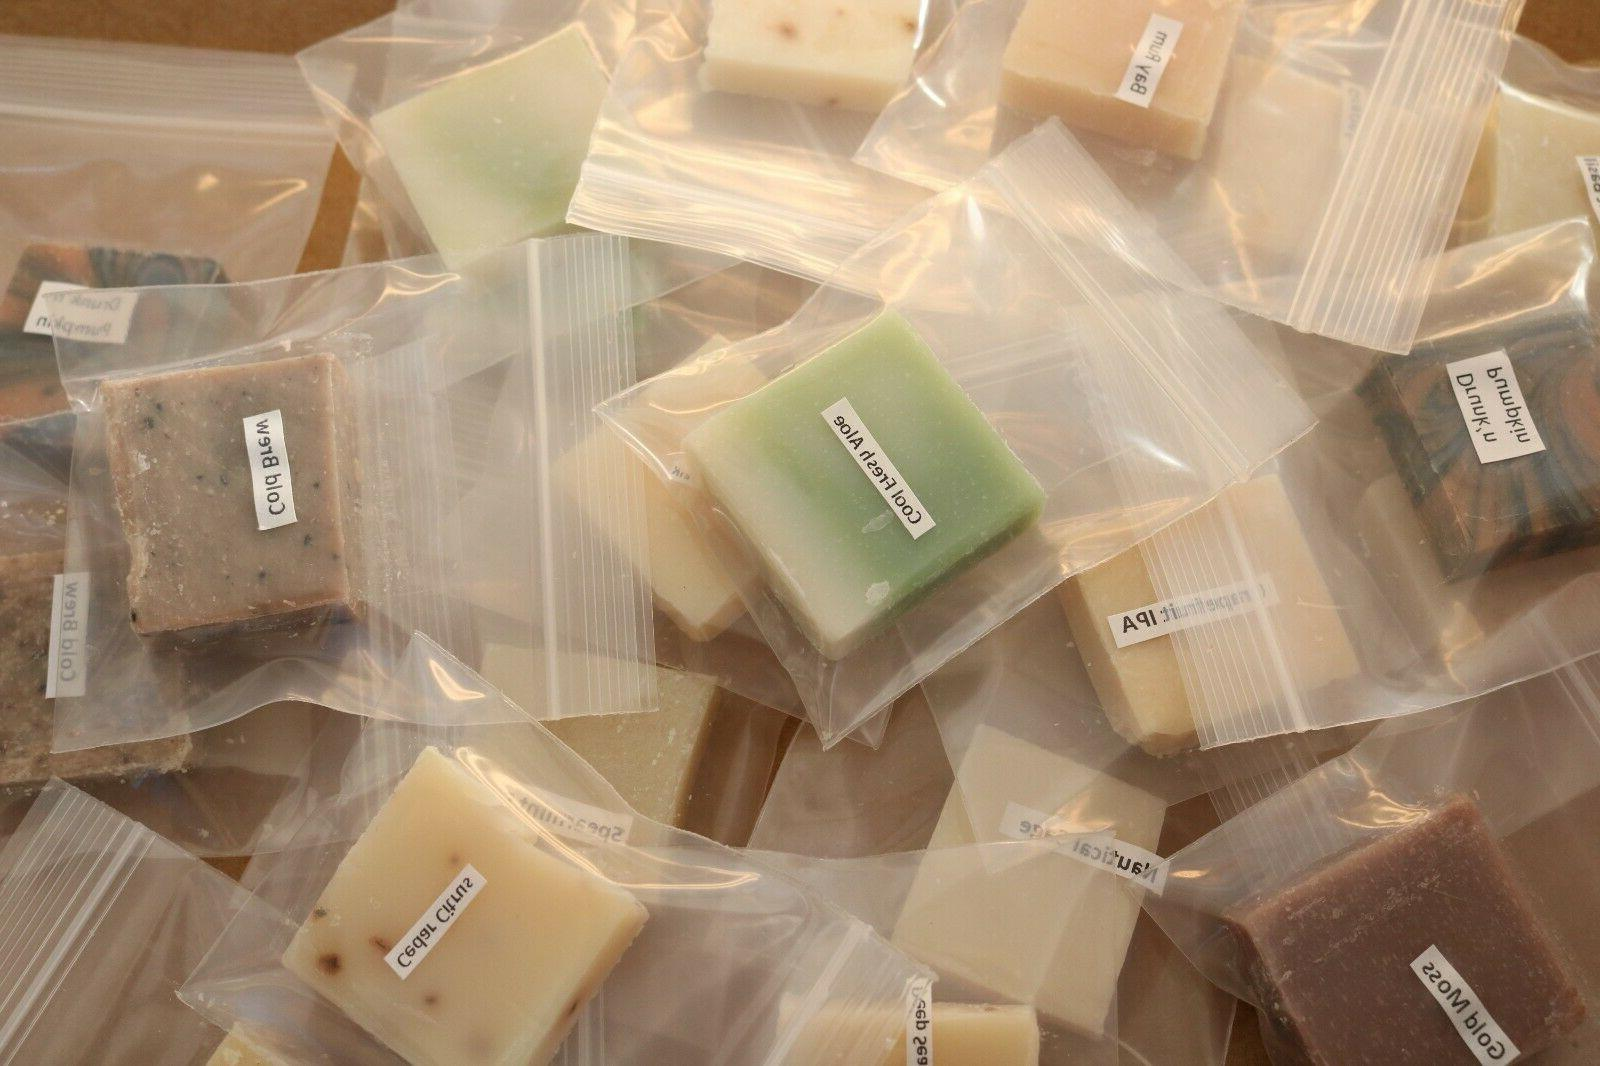 Dr Squatch Soap Sample Size Pack of 5 Mixed Scents NO REPEAT